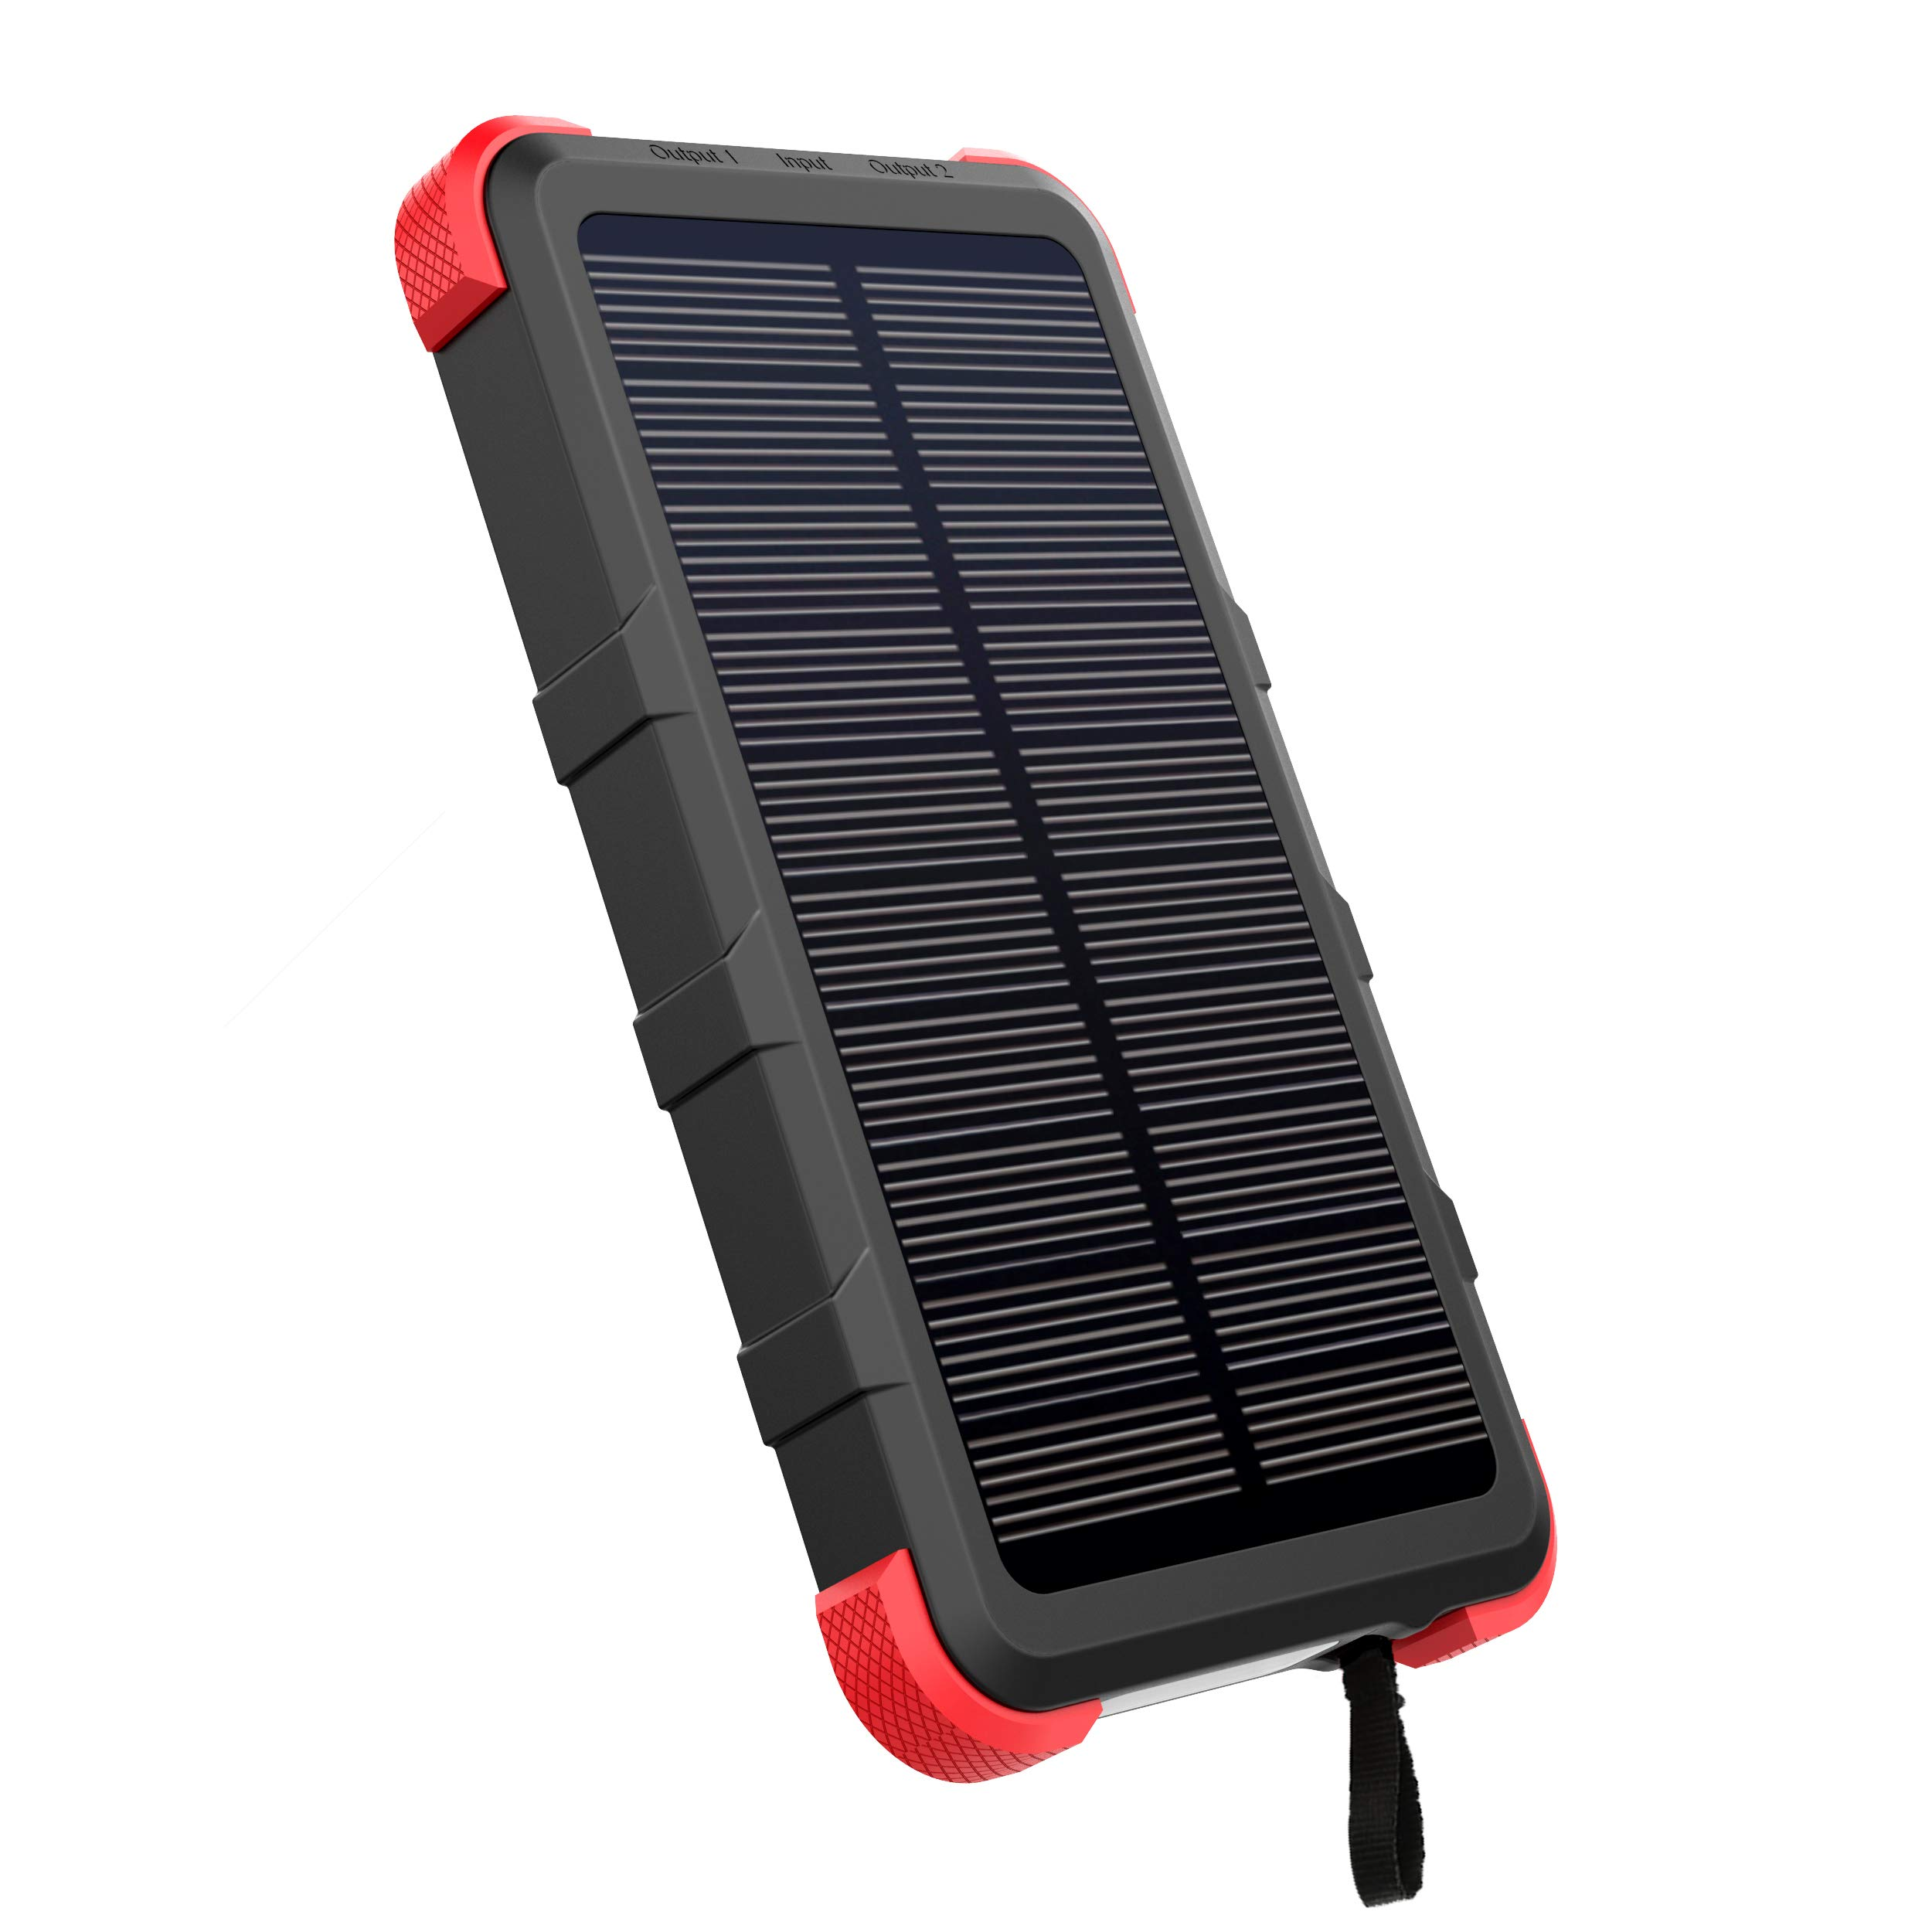 [Upgrade] OUTXE USB C Solar Charger 10000mAh with Flashlight IP67 Waterproof Solar Power Bank Rugged for Hiking Camping Backpacking